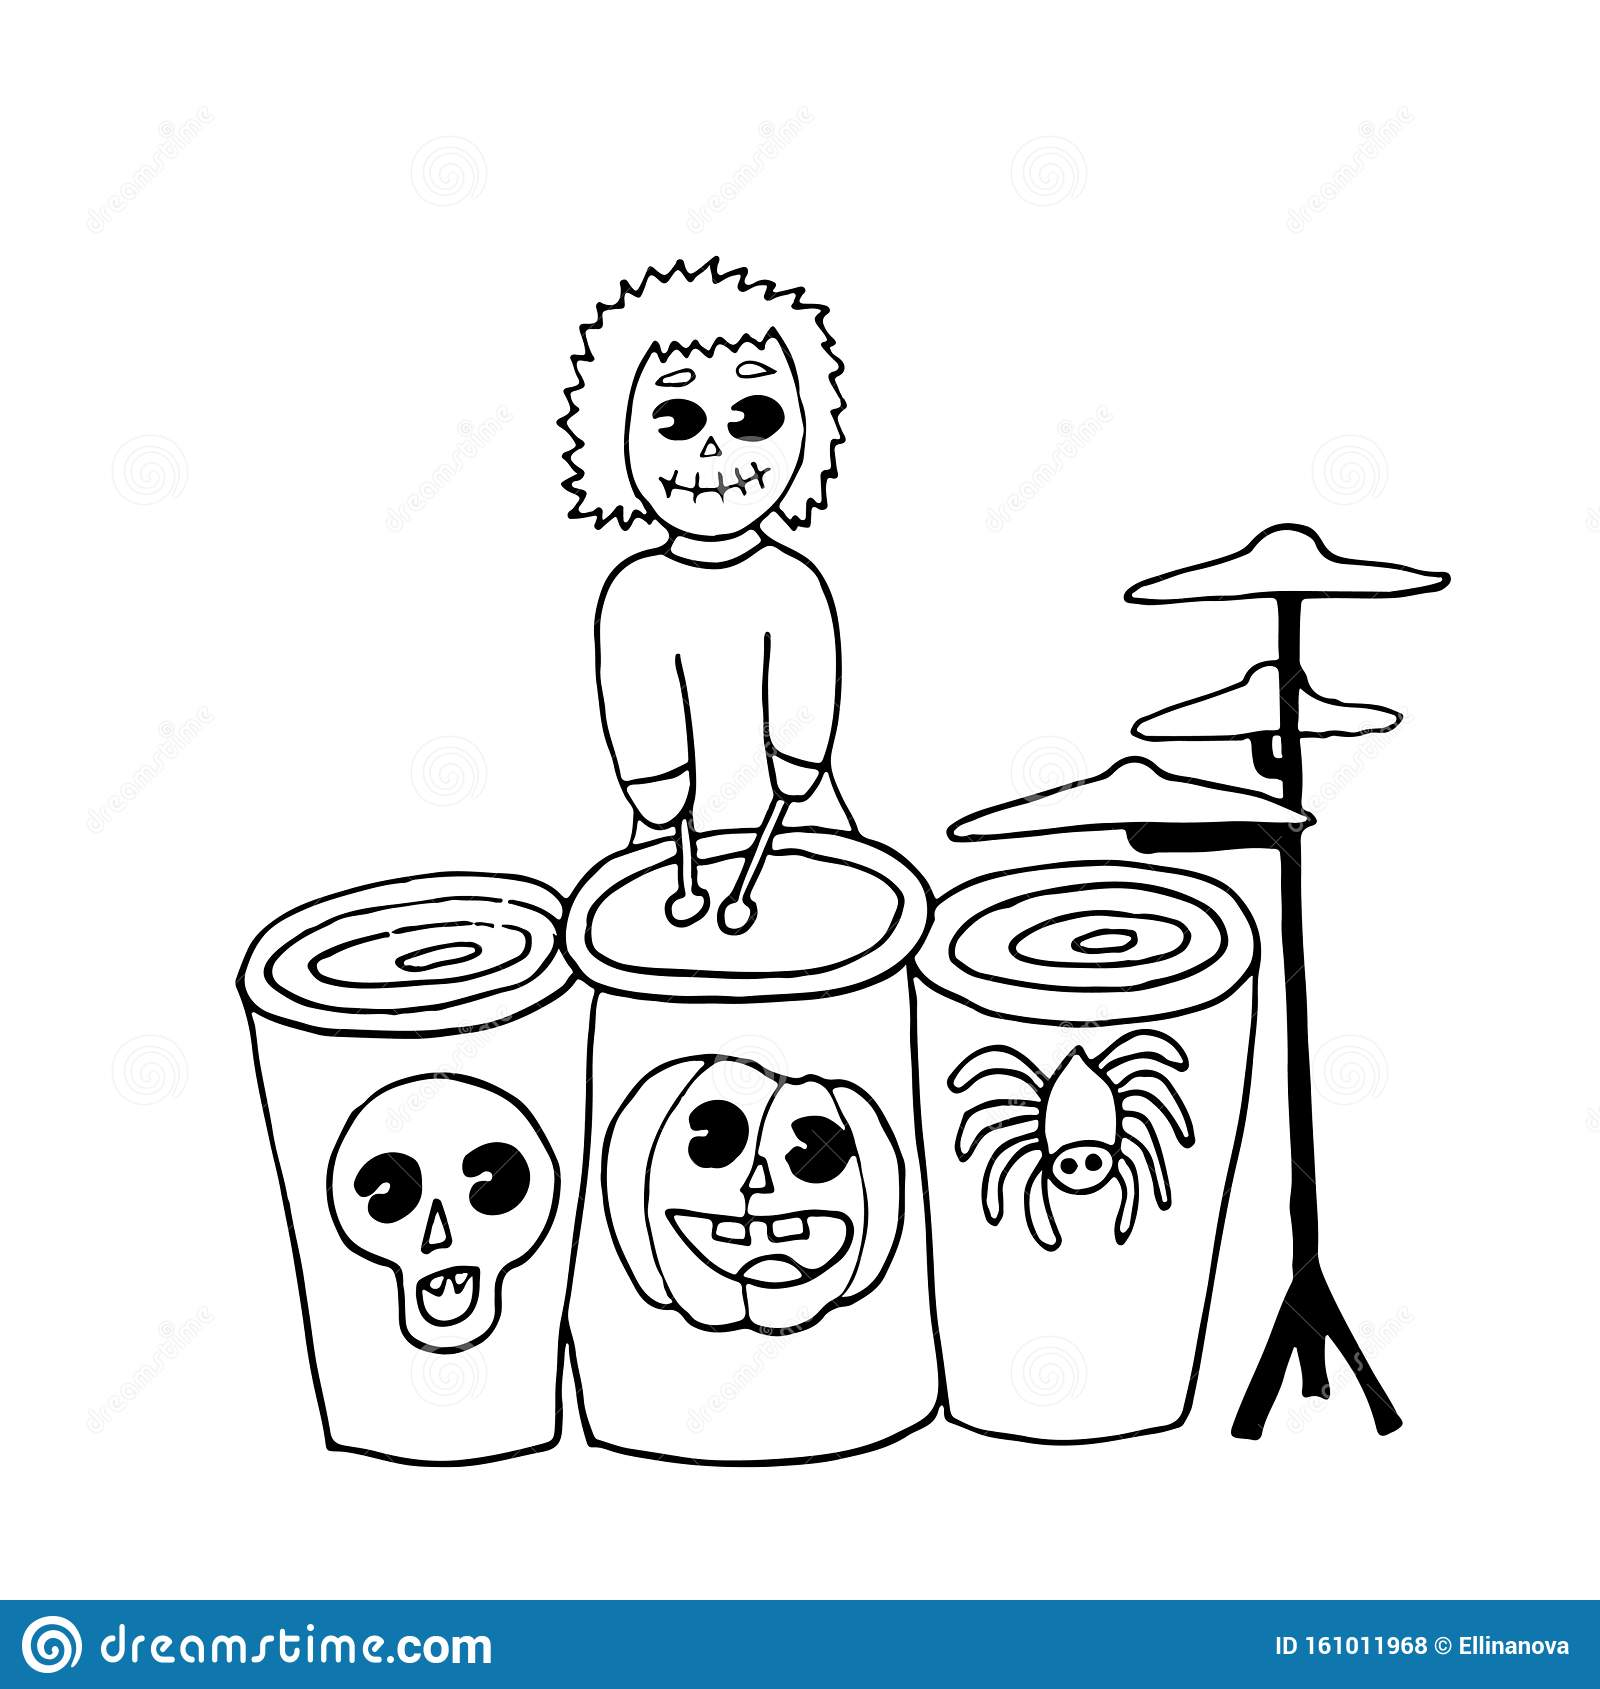 Printout for coloring table at halloween party   Free halloween ...   1689x1600